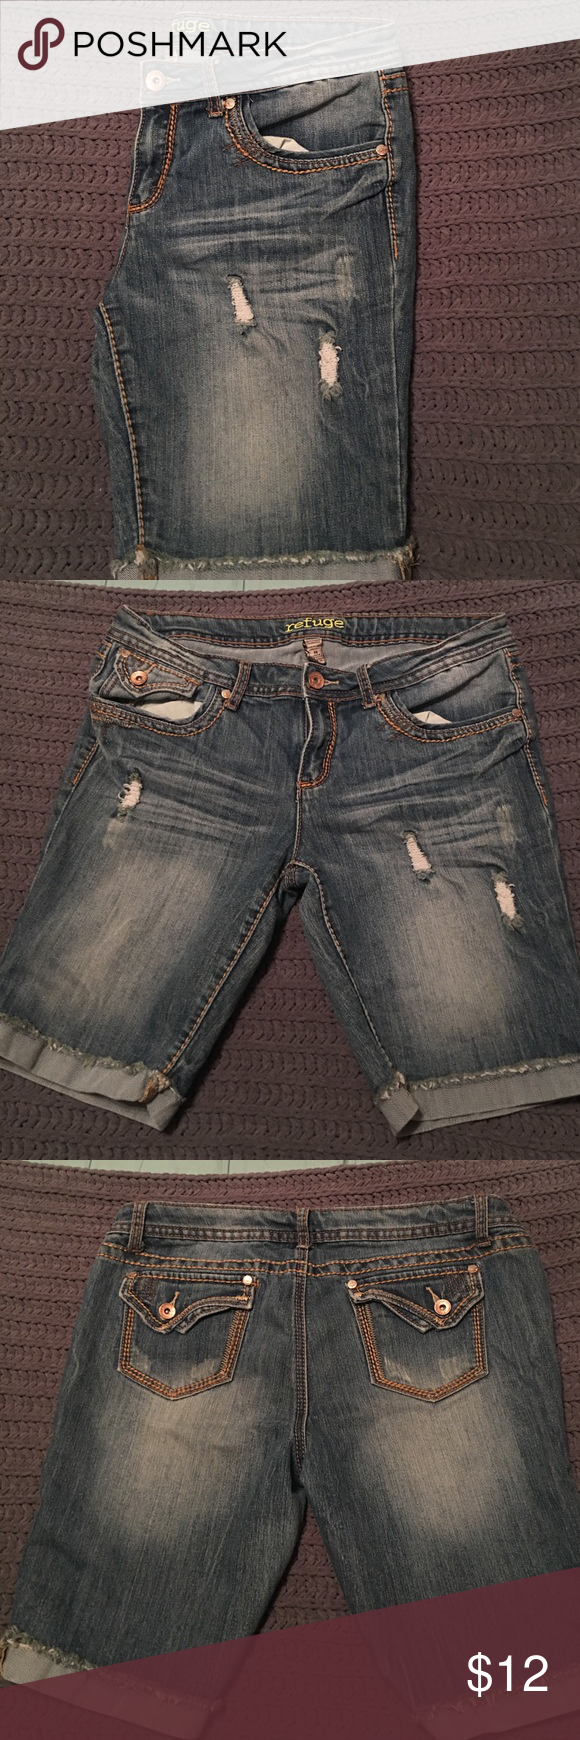 Refuge distressed denim shorts These shorts are Bermuda length and hit mid to low thigh. They have been gently worn but are in great shape. refuge Shorts Jean Shorts